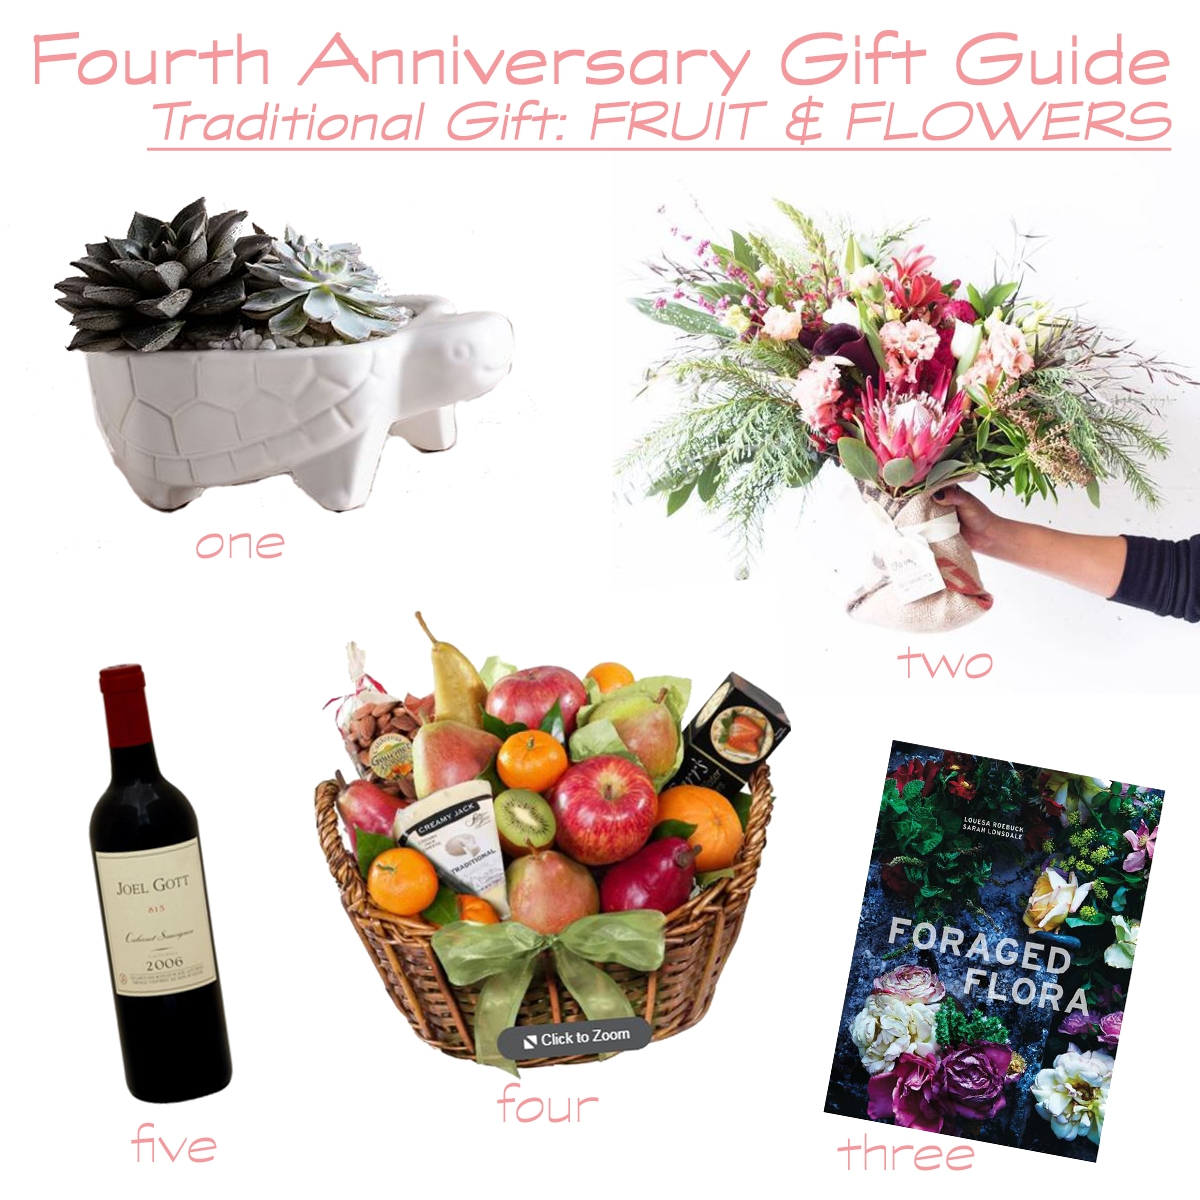 Wedding Anniversary Gifts By Year Modern And Traditional: Wedding Anniversary Gift Guide: Modern Versions Of